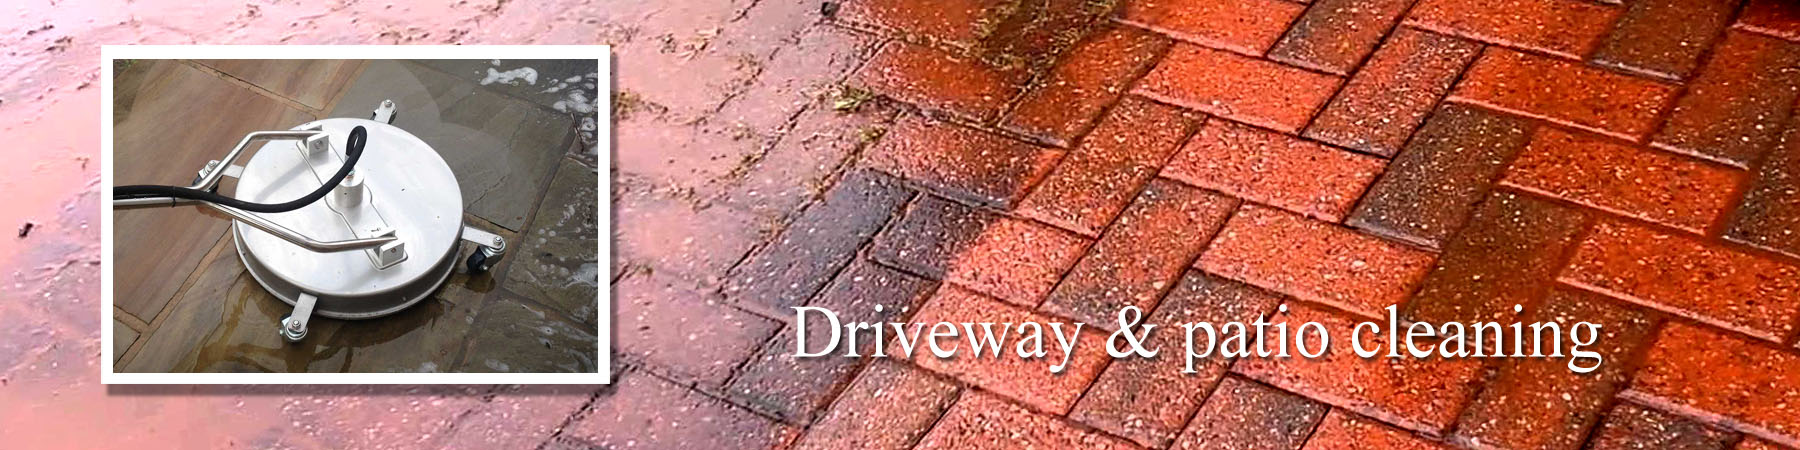 J.R. Driveway & Patio Cleaning Hooe Common J R Cleaning